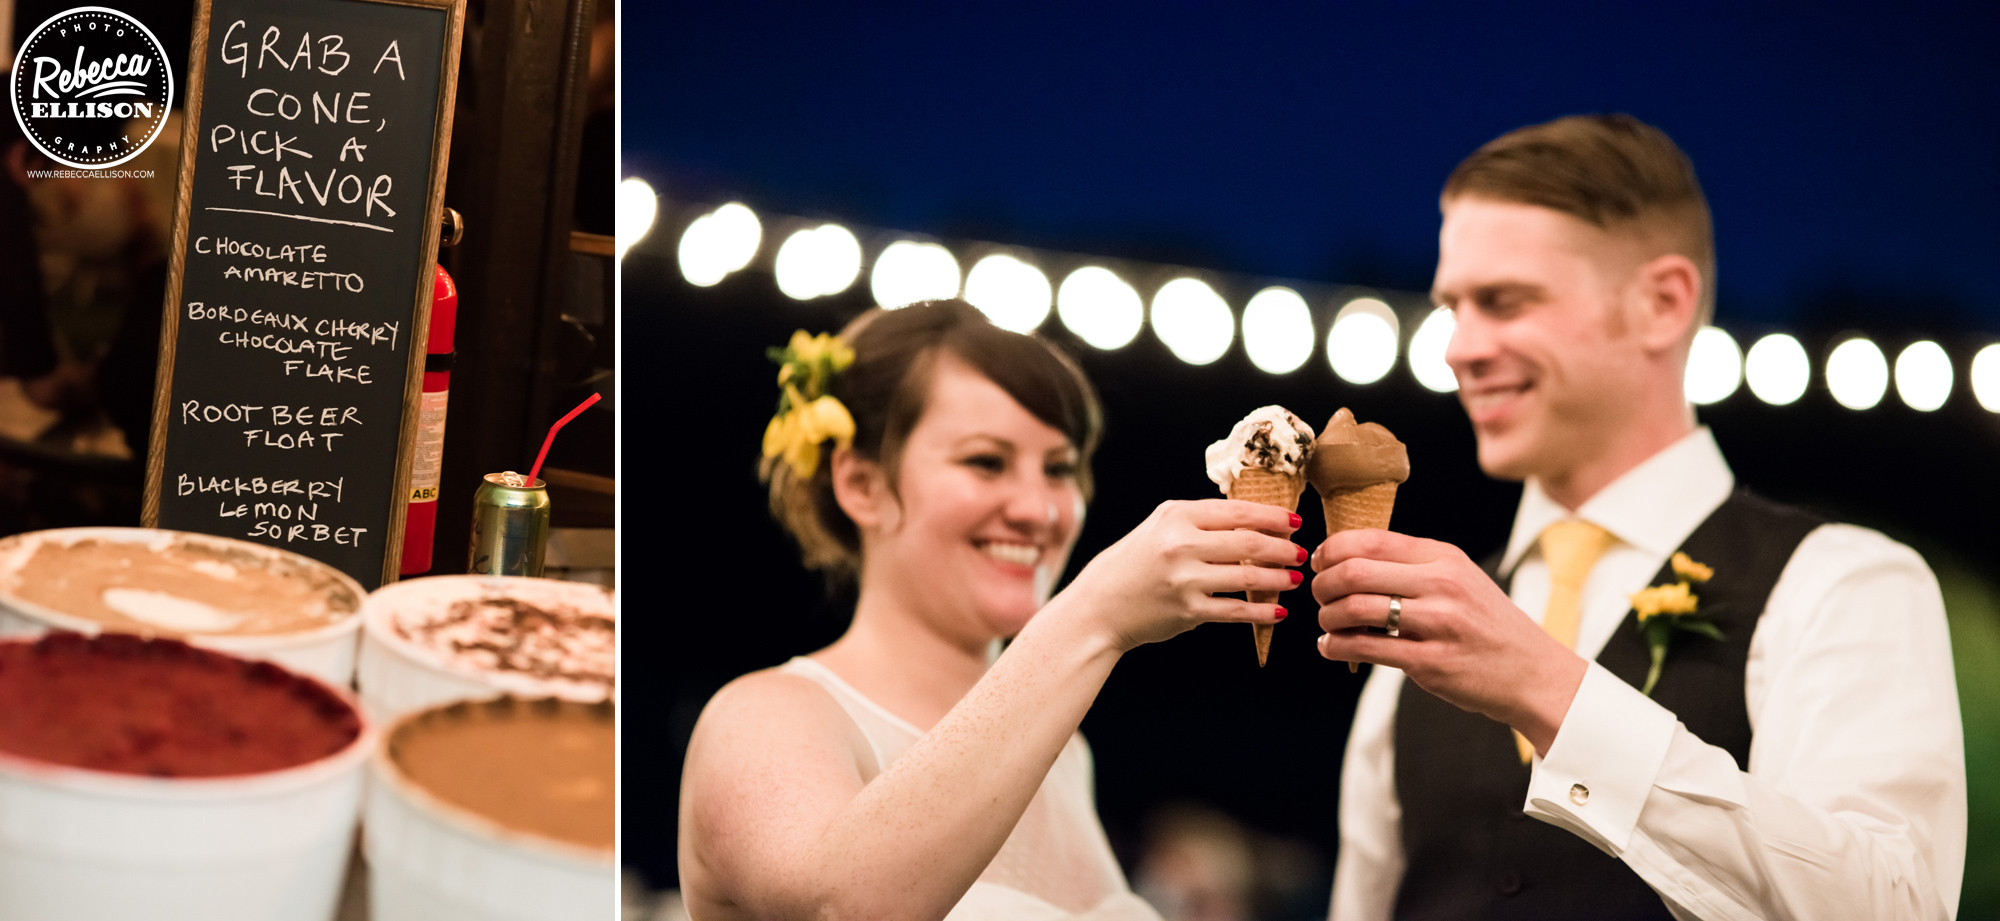 dessert ice cream bar at backyard beach house wedding photography by Seattle wedding photographer Rebecca Ellison